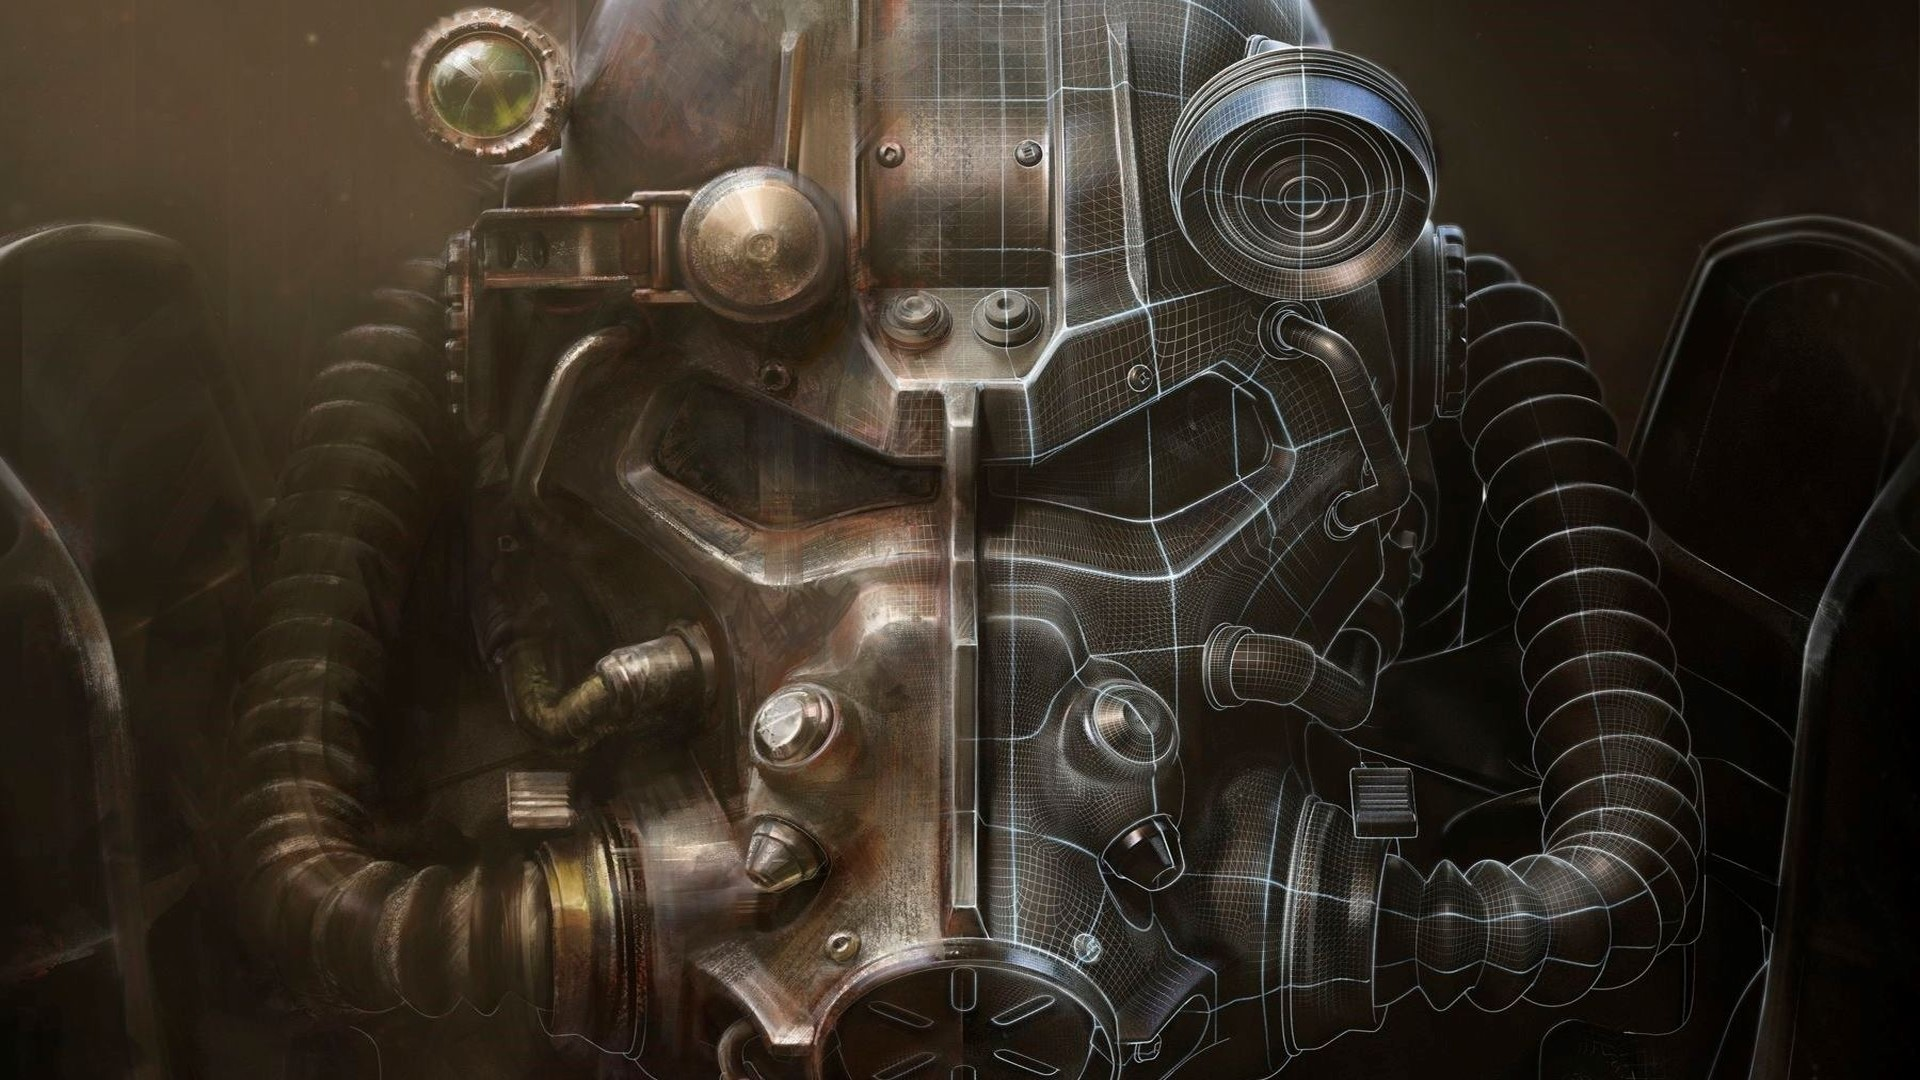 Fallout wallpapers HD for desktop.